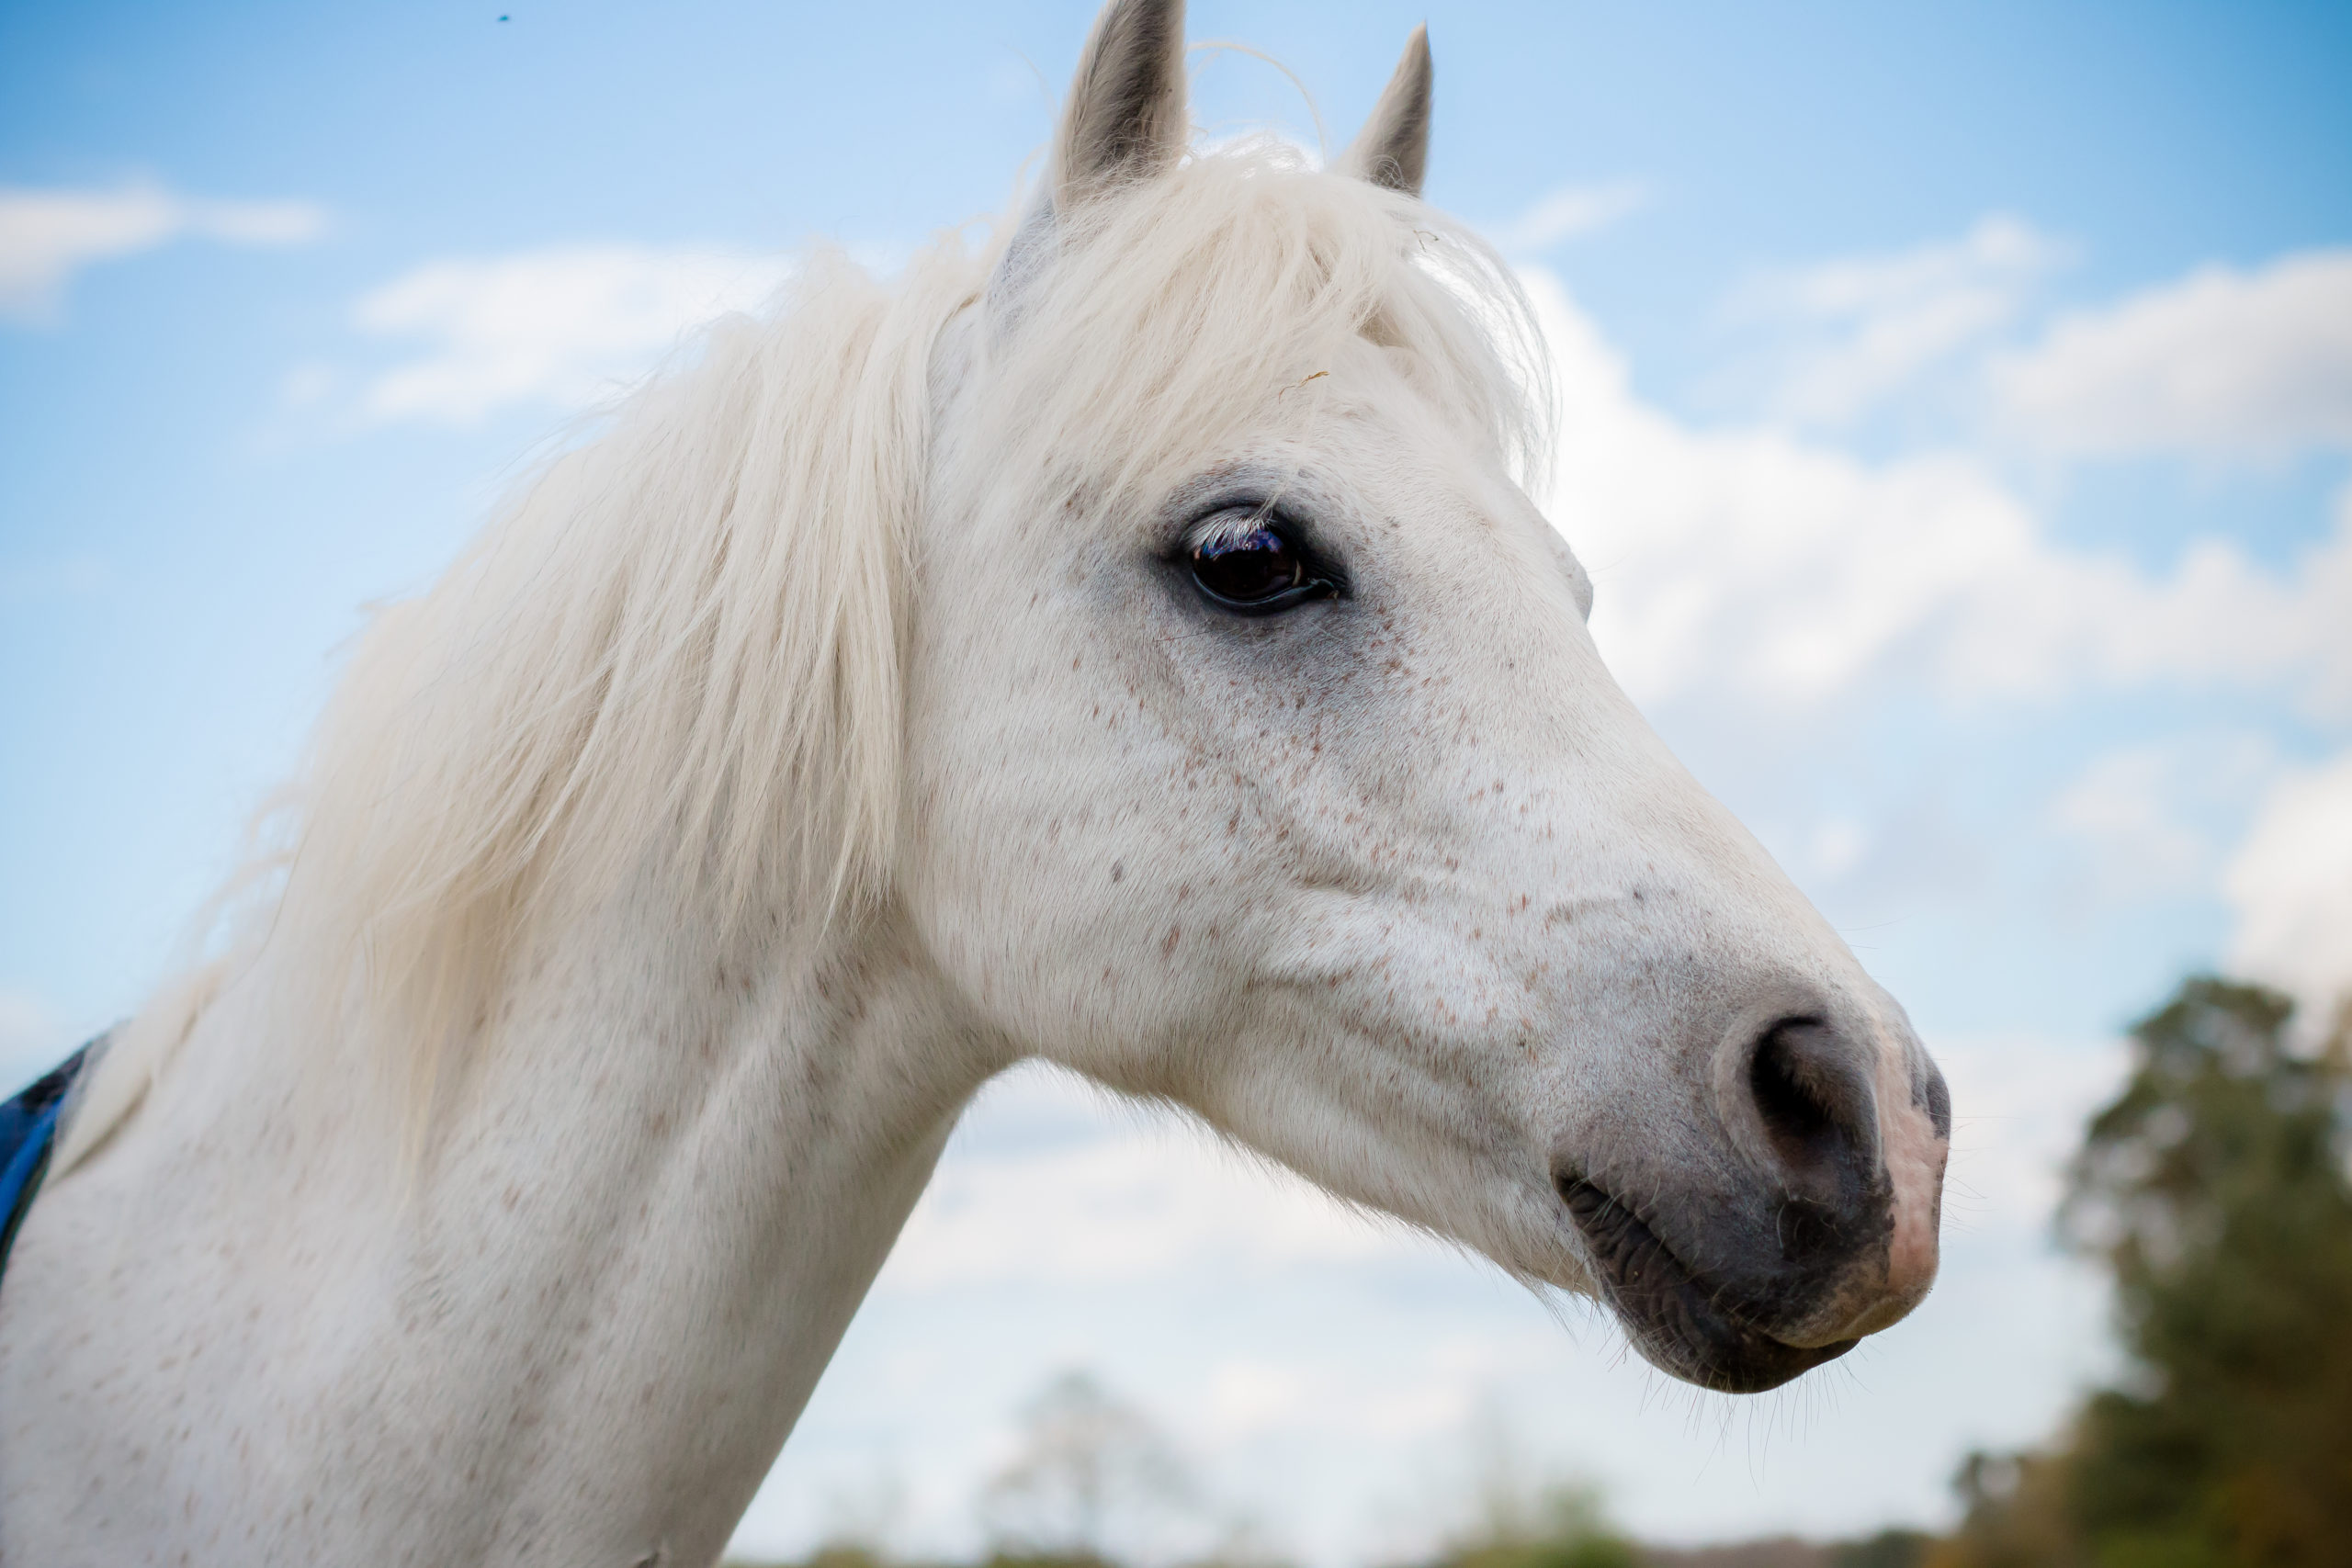 AskHQ: Therapy horses